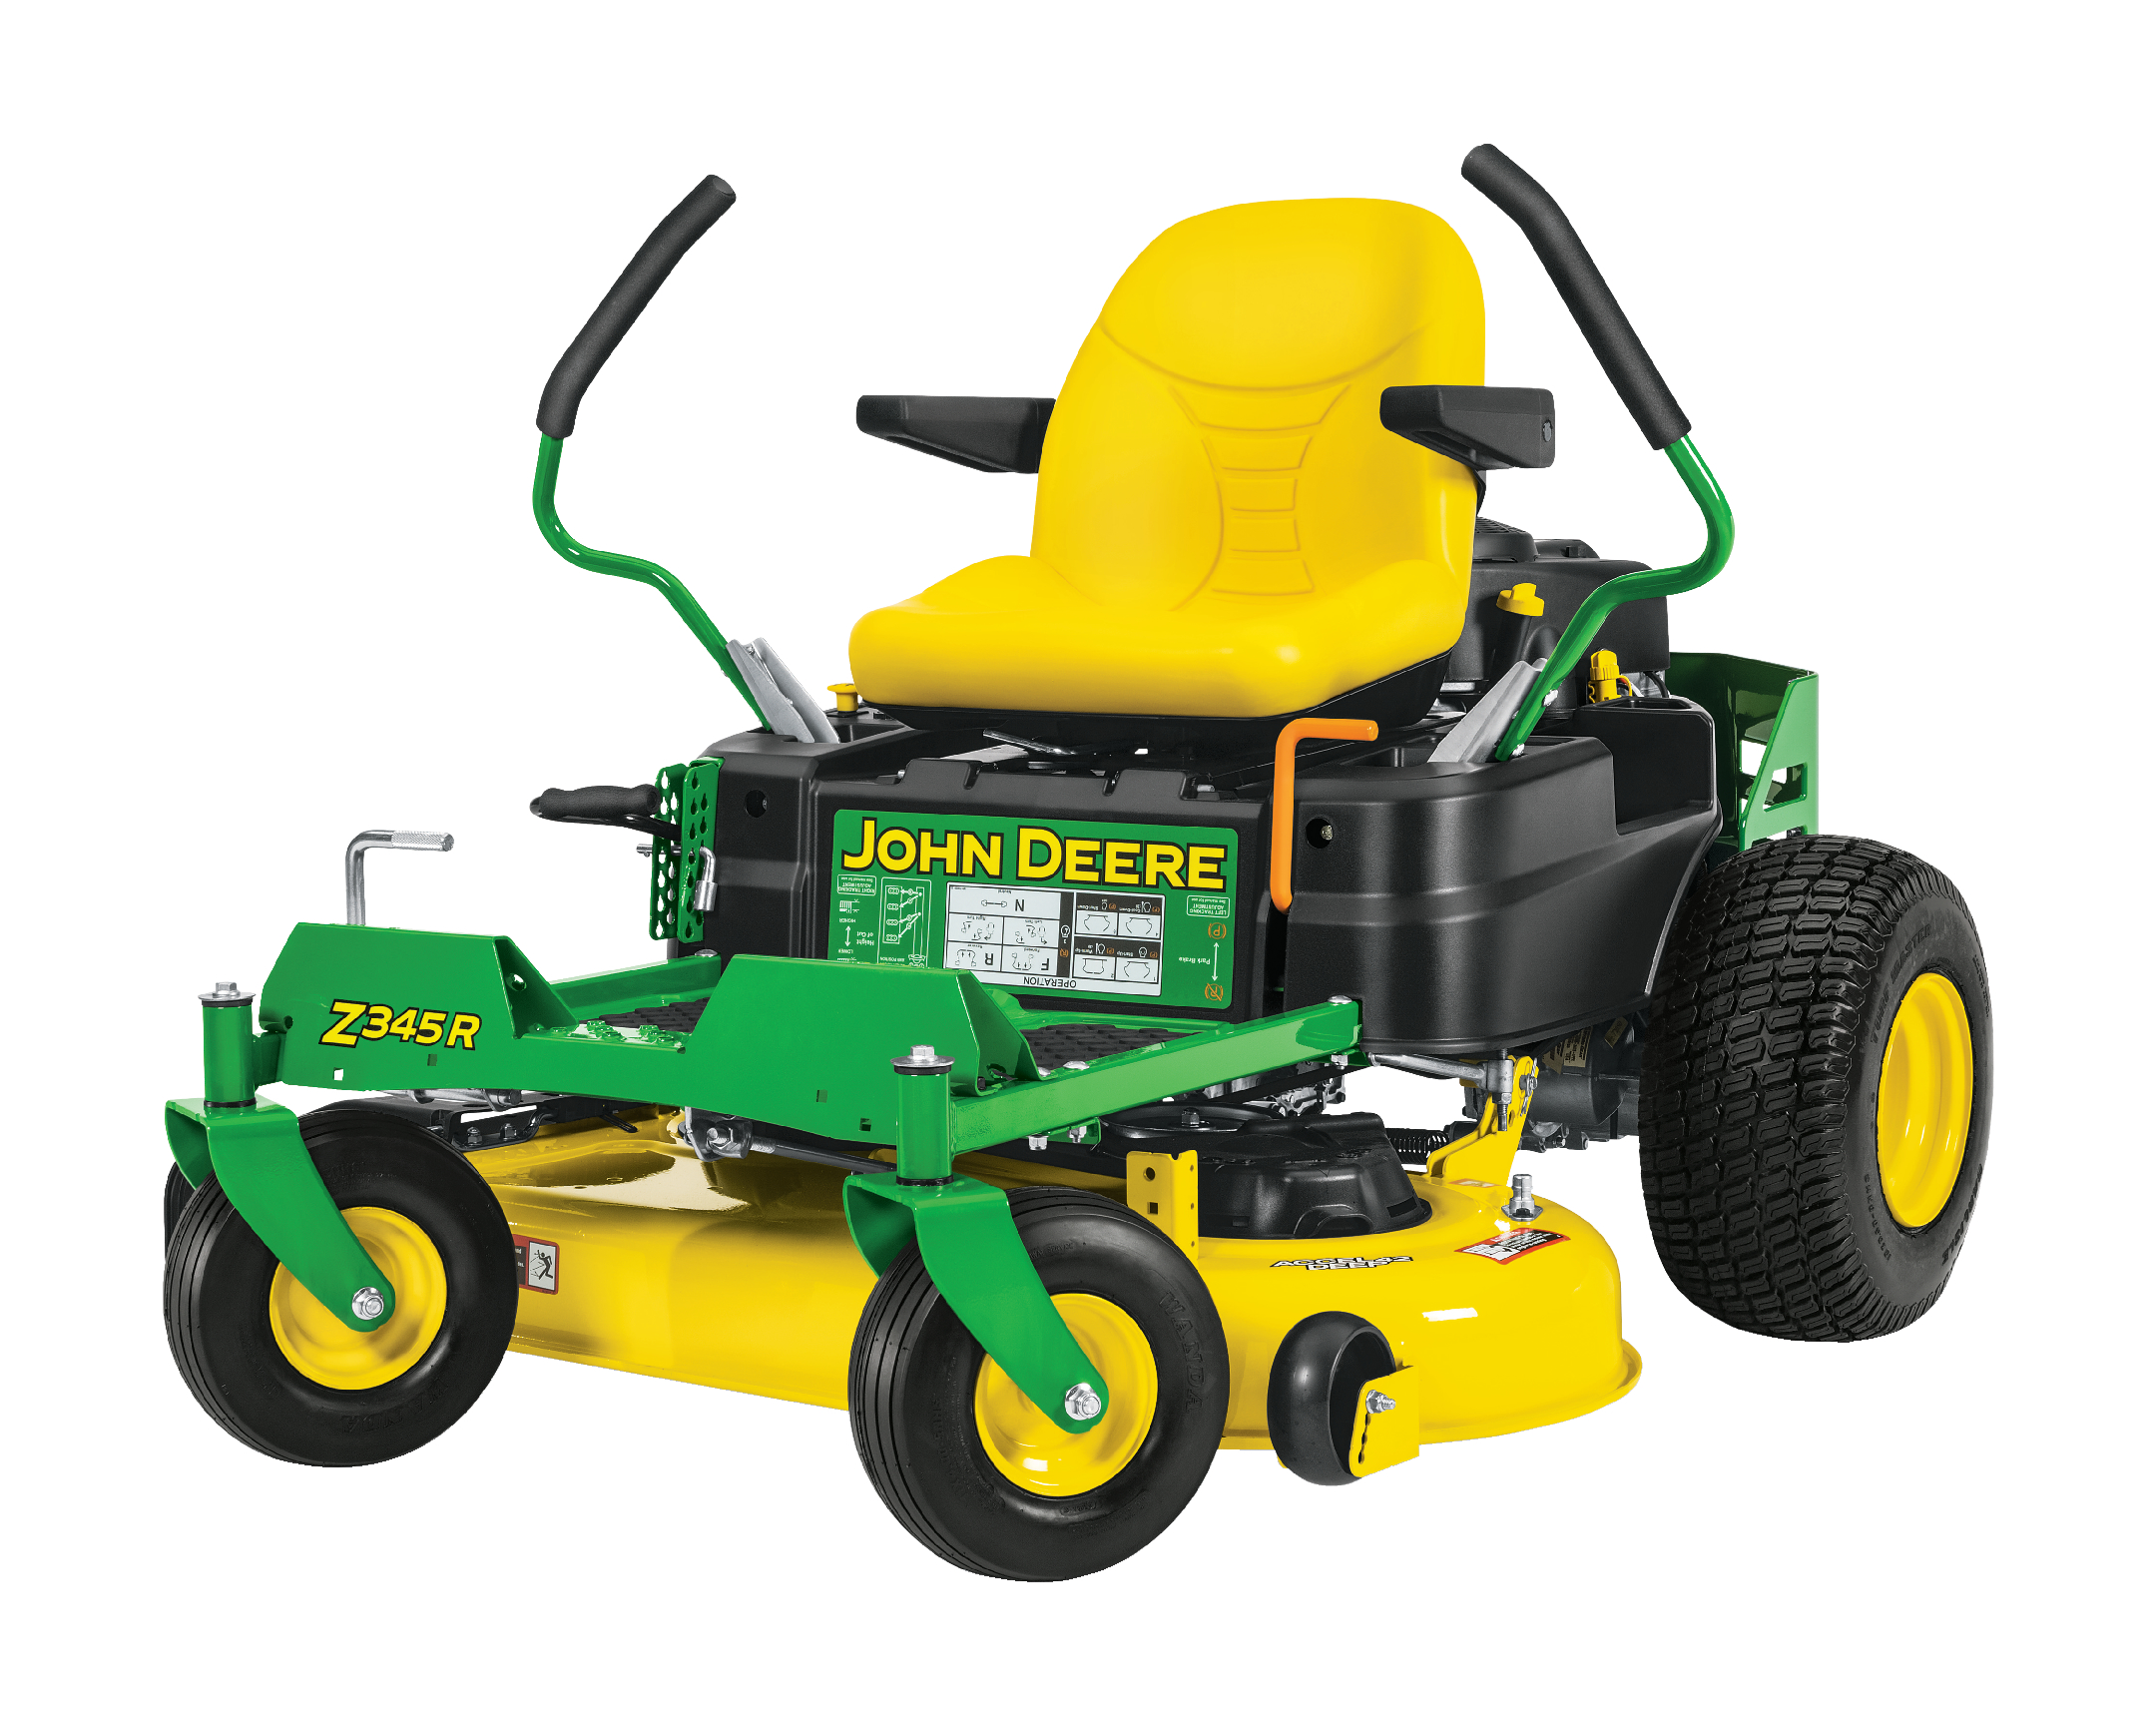 John Deere ZTrak Z3000 Models Improved | John Deere US